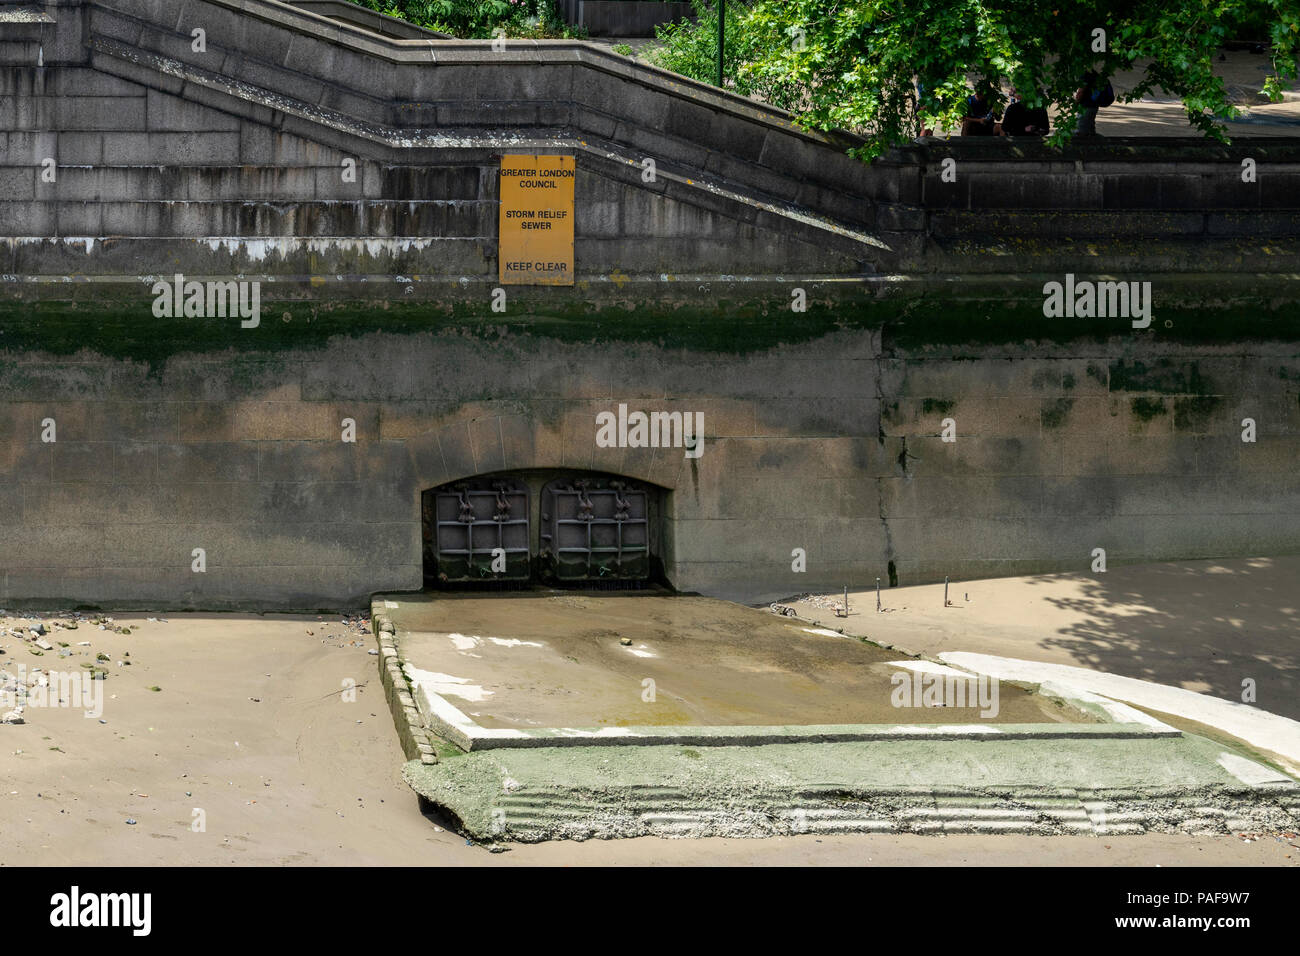 Storm relief sewer beside Lambeth Bridge, London - Stock Image